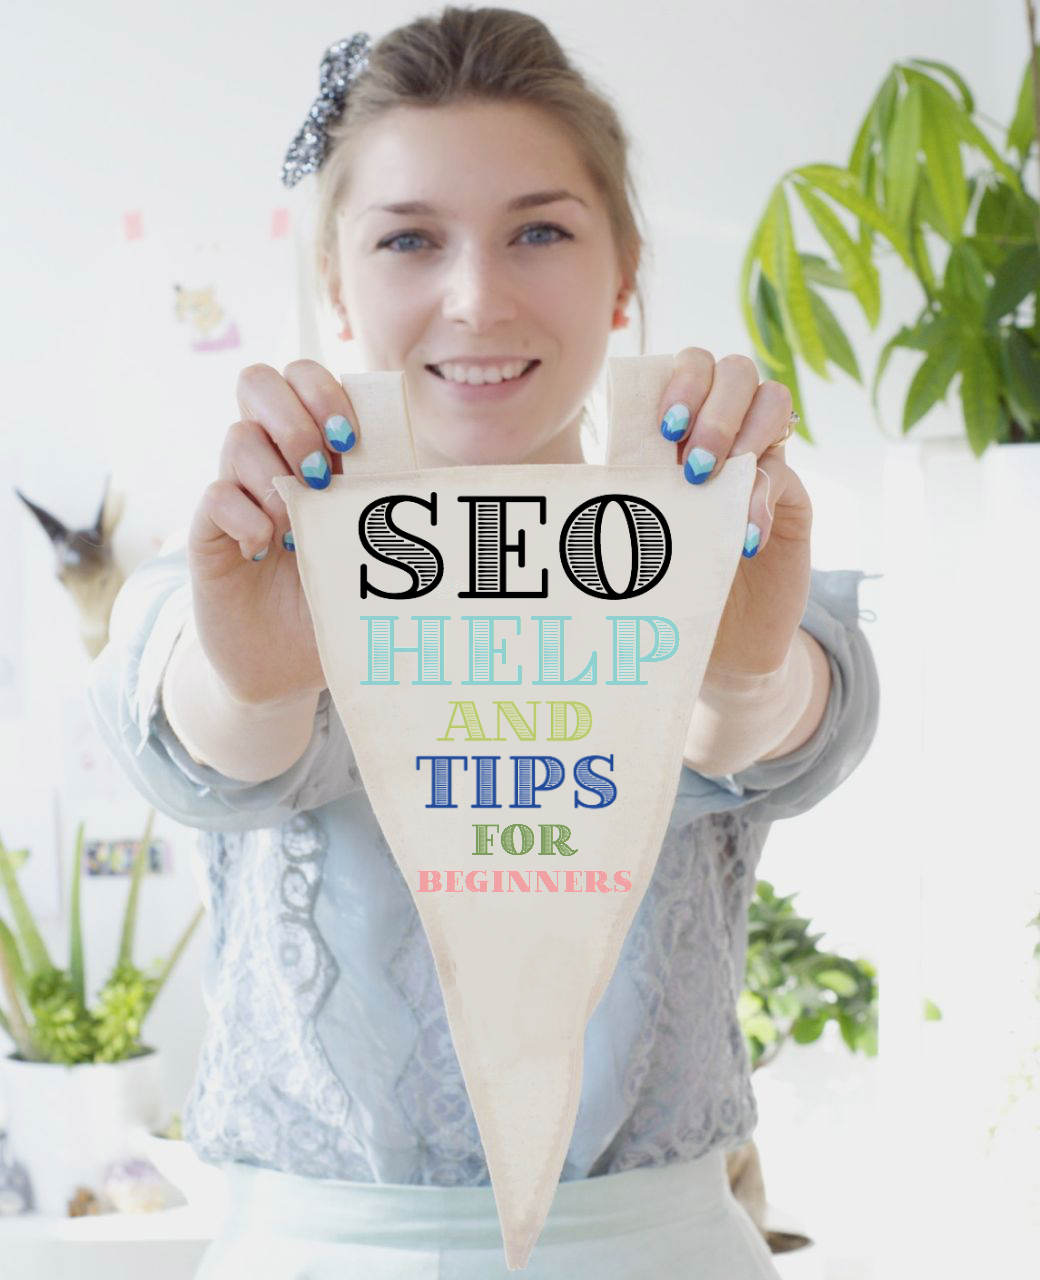 SEO help and tips for beginners